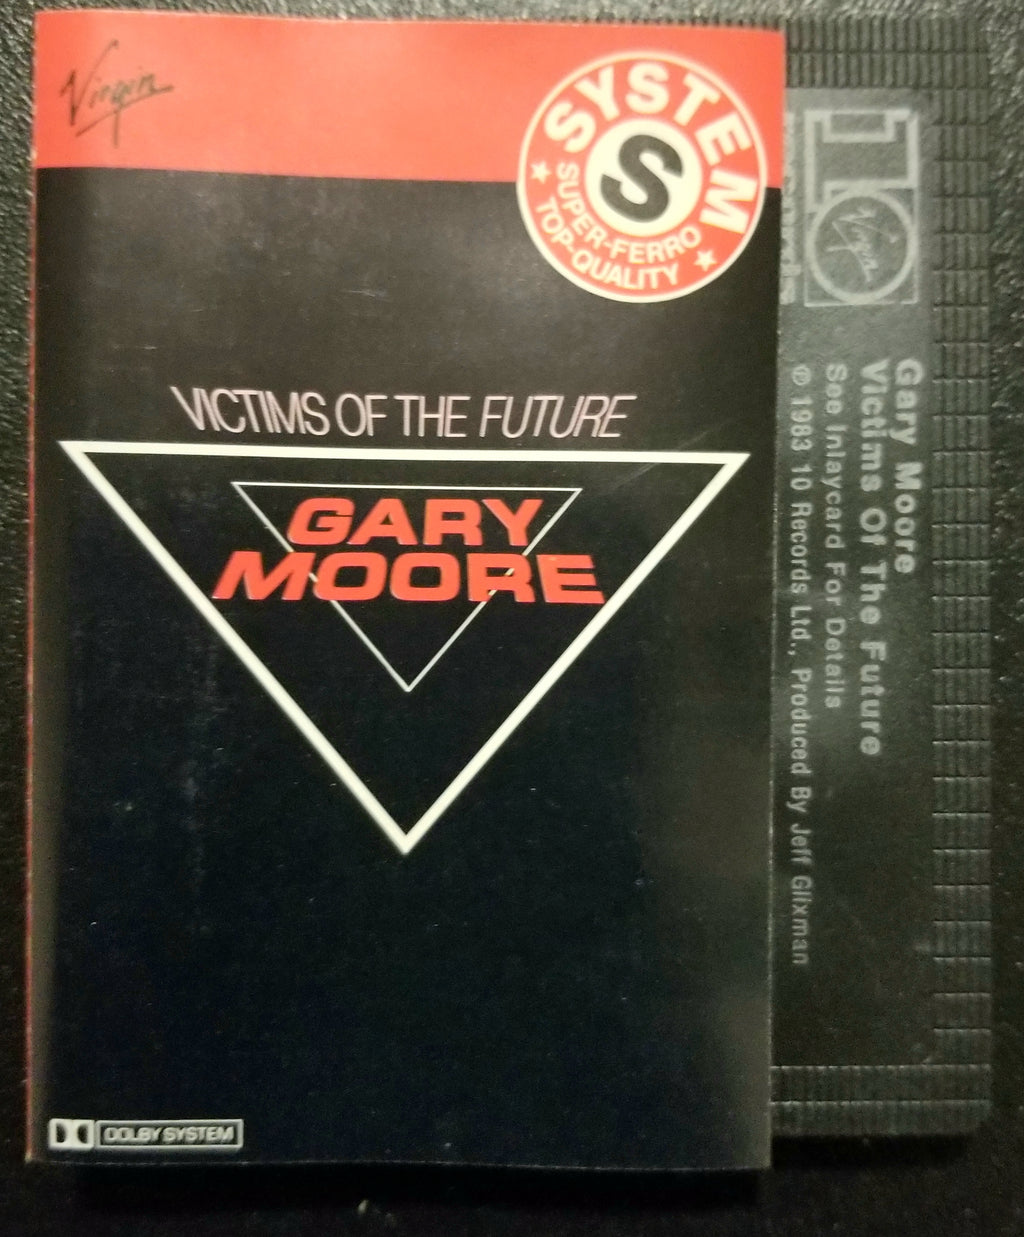 GARY MOORE Victims of the Future Cassette